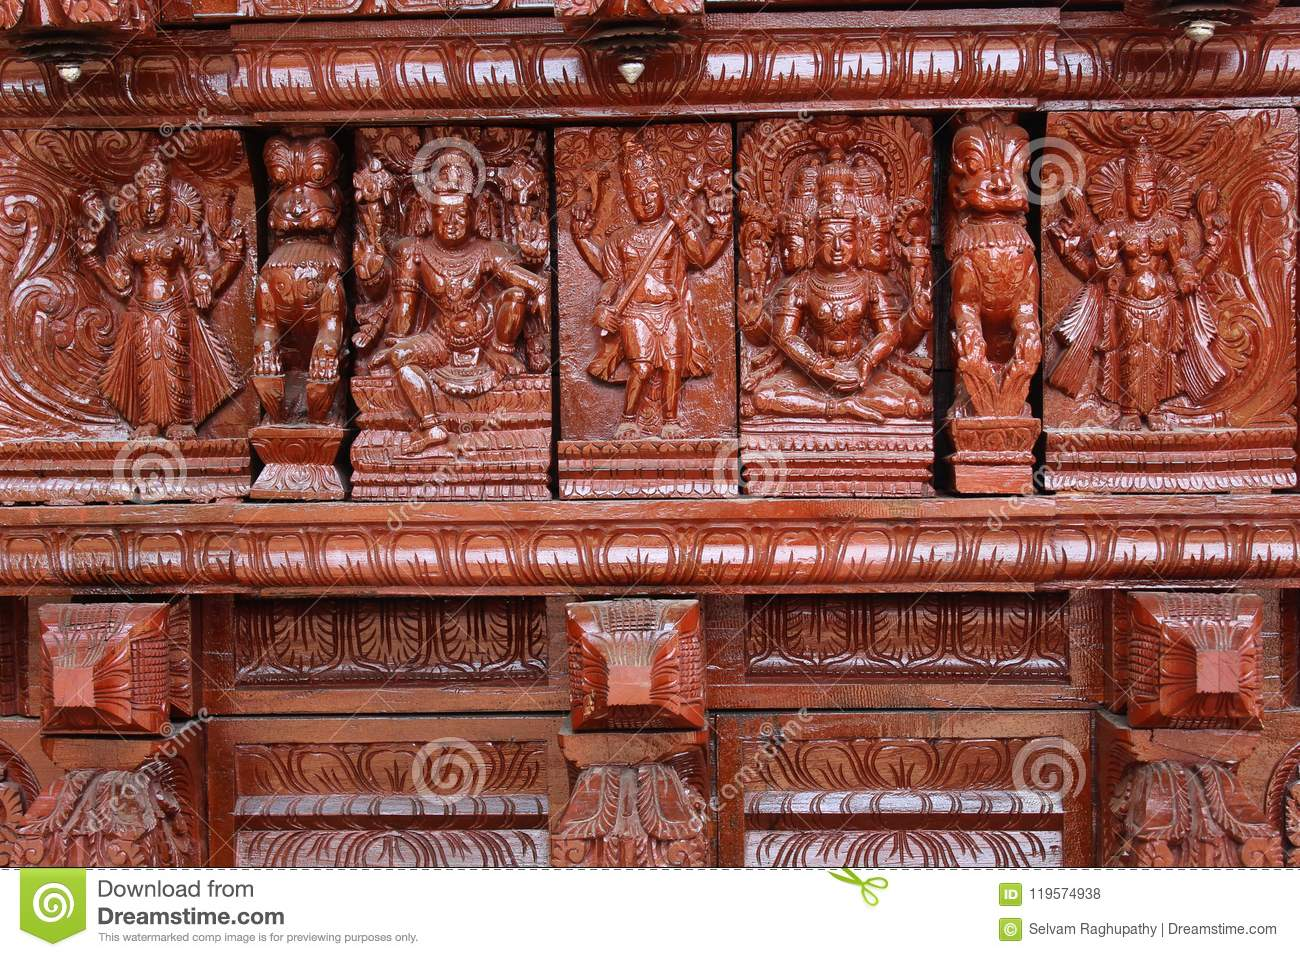 Very nice wood carving ornamental statues on the indian temple car